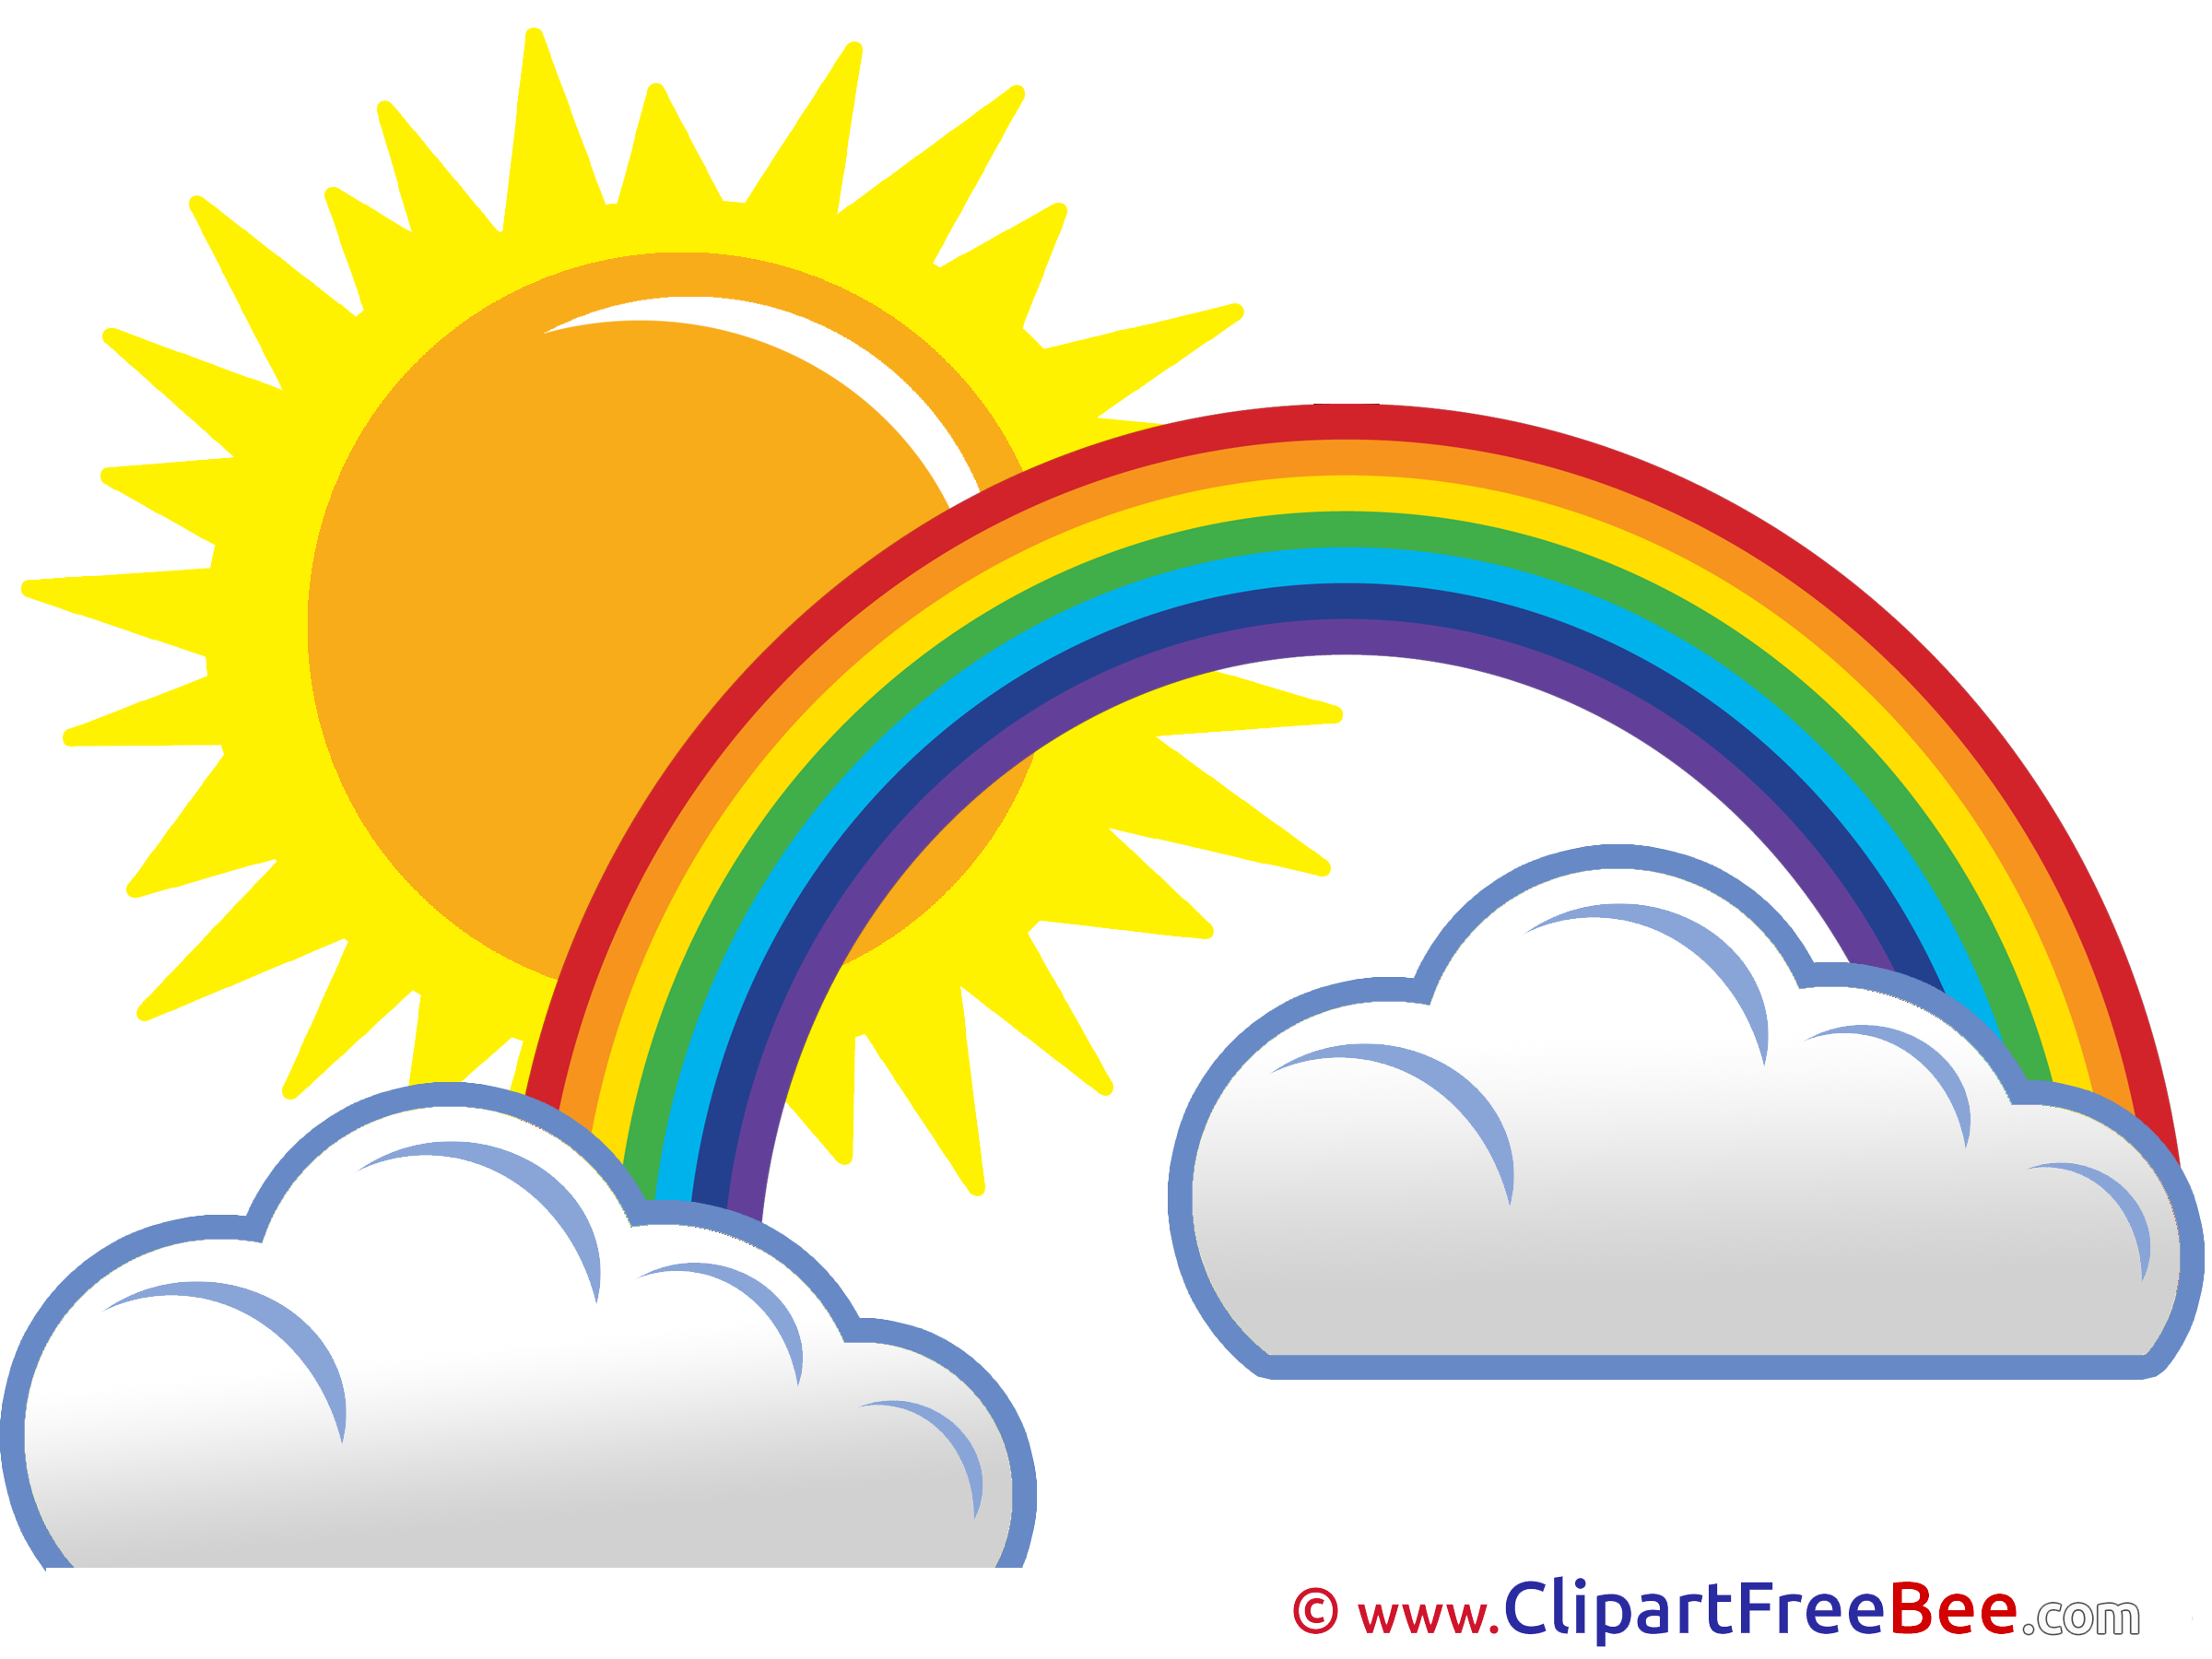 Rainbow Clipart Sun Pencil And In Color Rainbow Clipart Sun